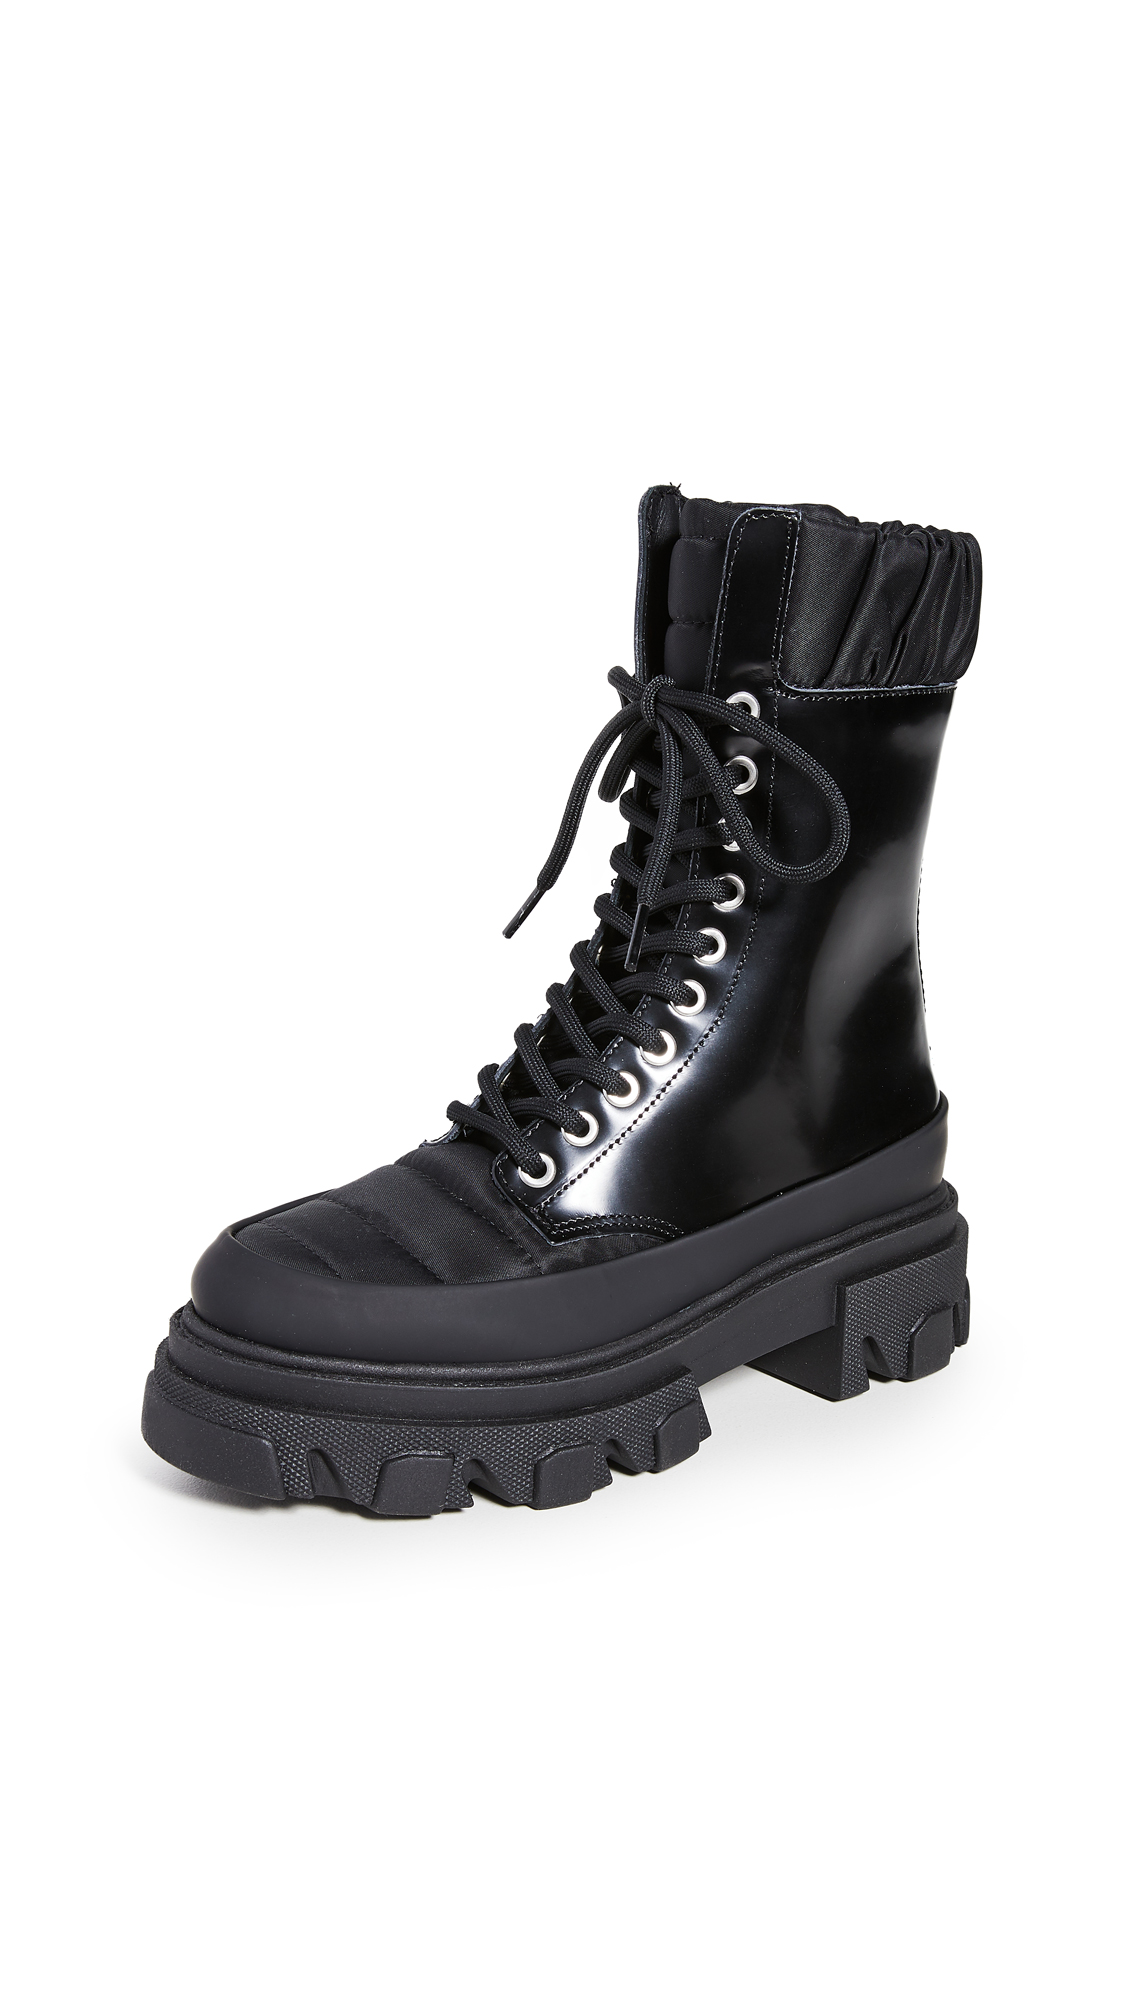 Ganni Ankle highs TRACK SOLE COMBAT BOOTS